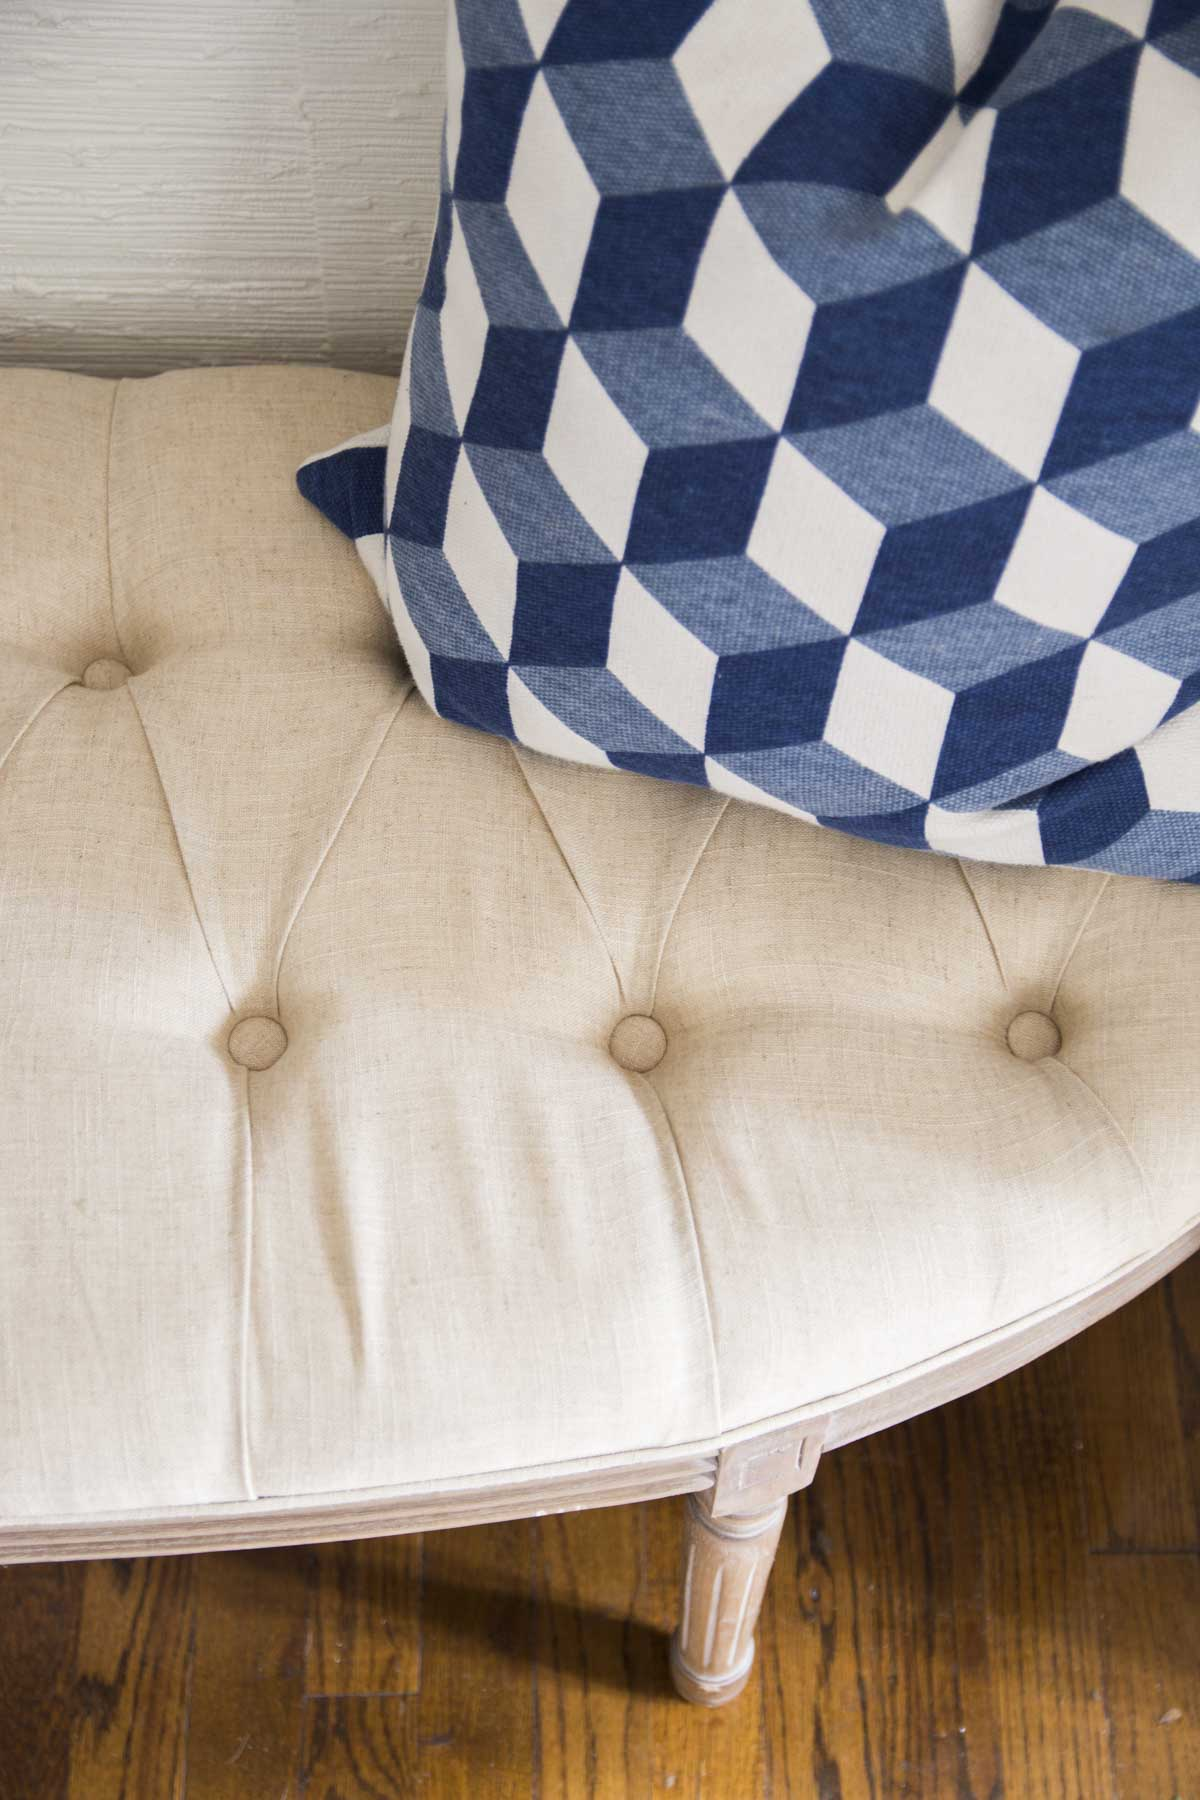 Tufted demilune bench in the entryway on Thou Swell @thouswellblog